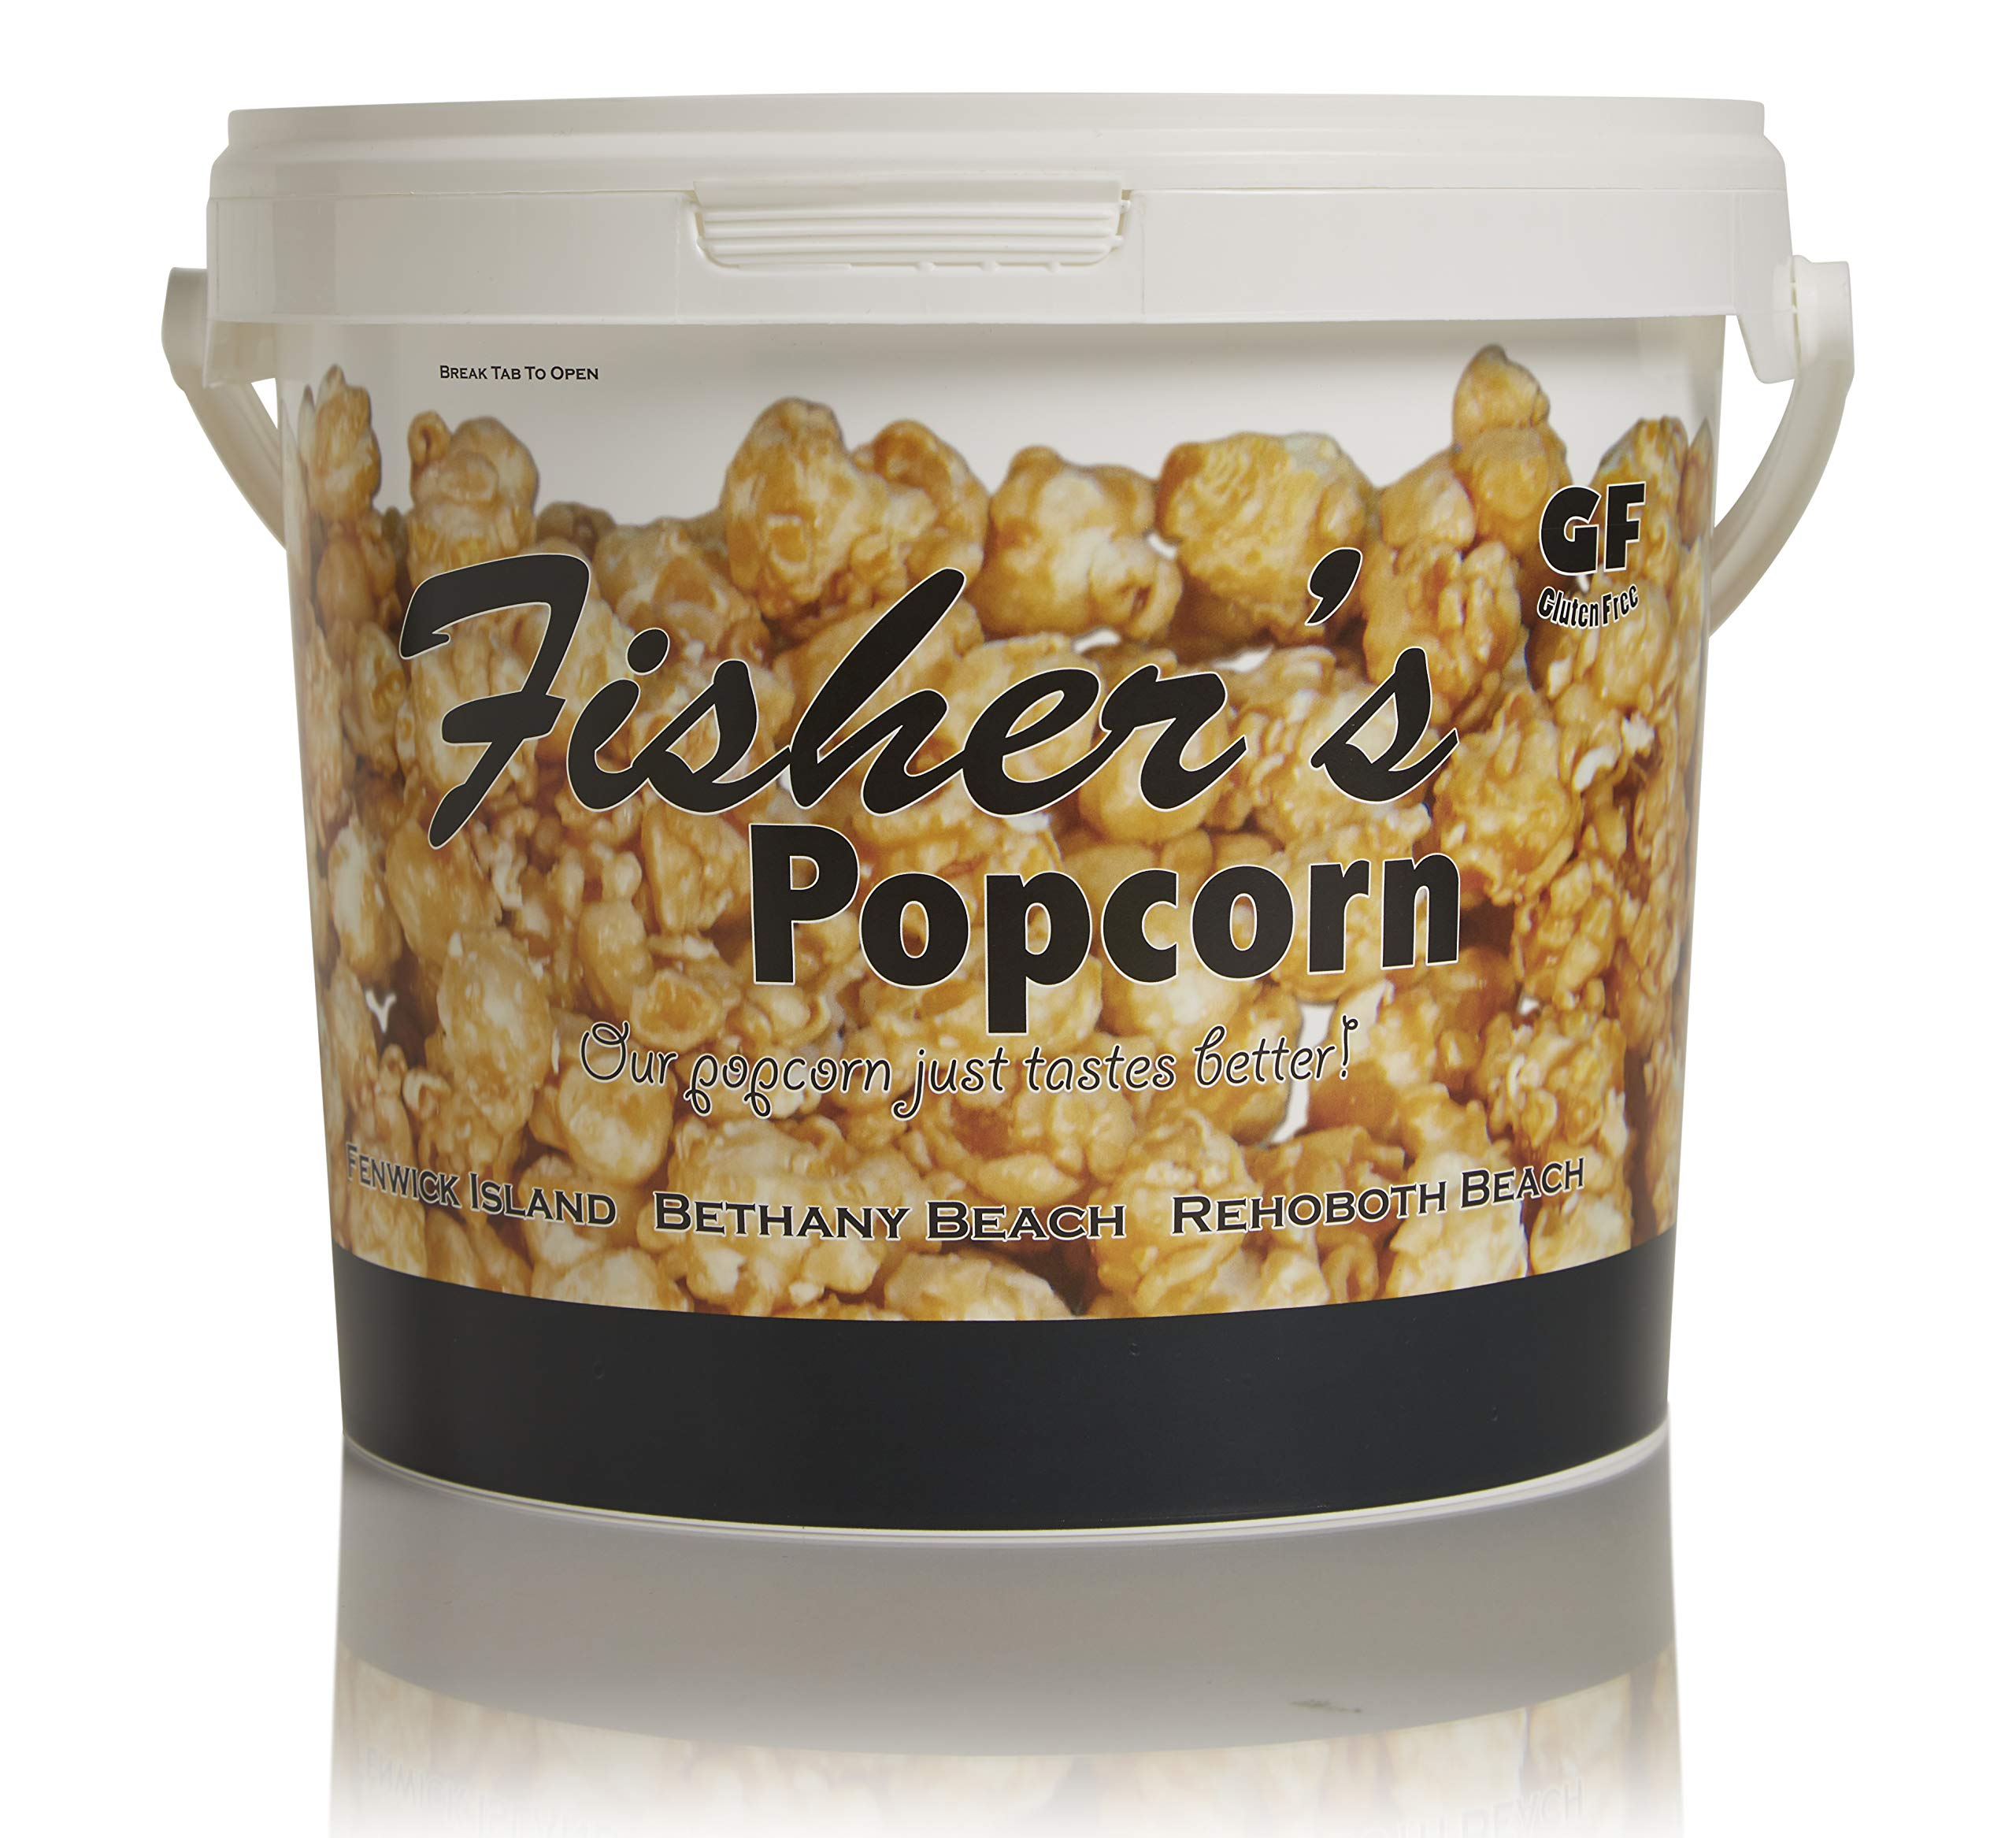 Fisher's Popcorn Caramel Popcorn, Gluten Free, 5 Simple Ingredients, Handmade, No Preservatives, No High Fructose Corn Syrup, Zero Trans Fat, 48oz Tub (2.5 Gallons) by Fisher's Popcorn